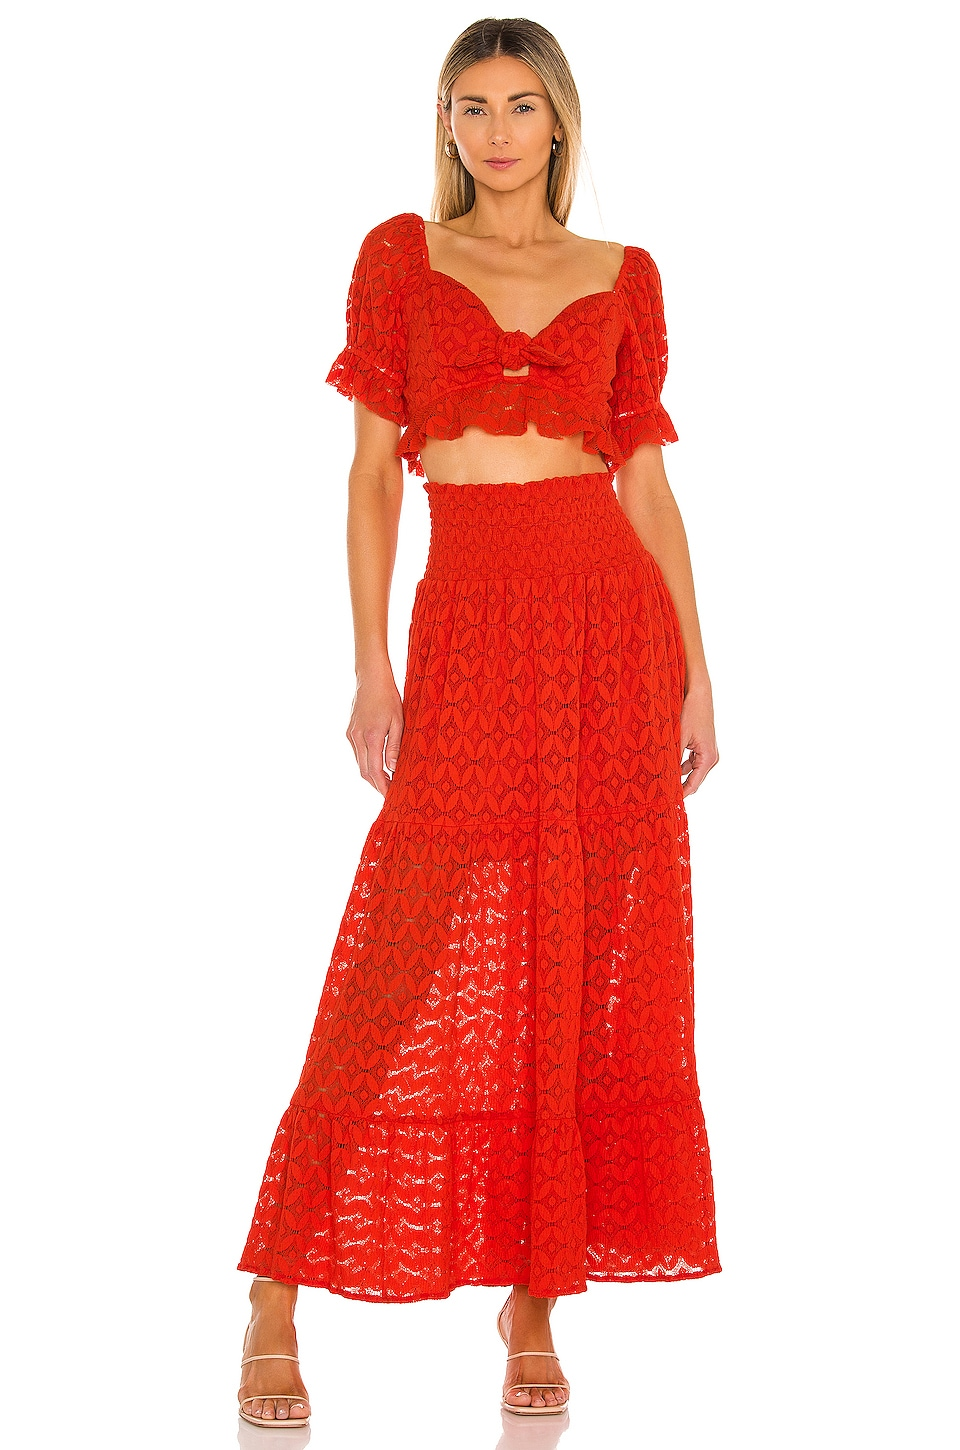 Show Me Your Mumu Melinda Maxi Skirt in Spacey Lacey Red